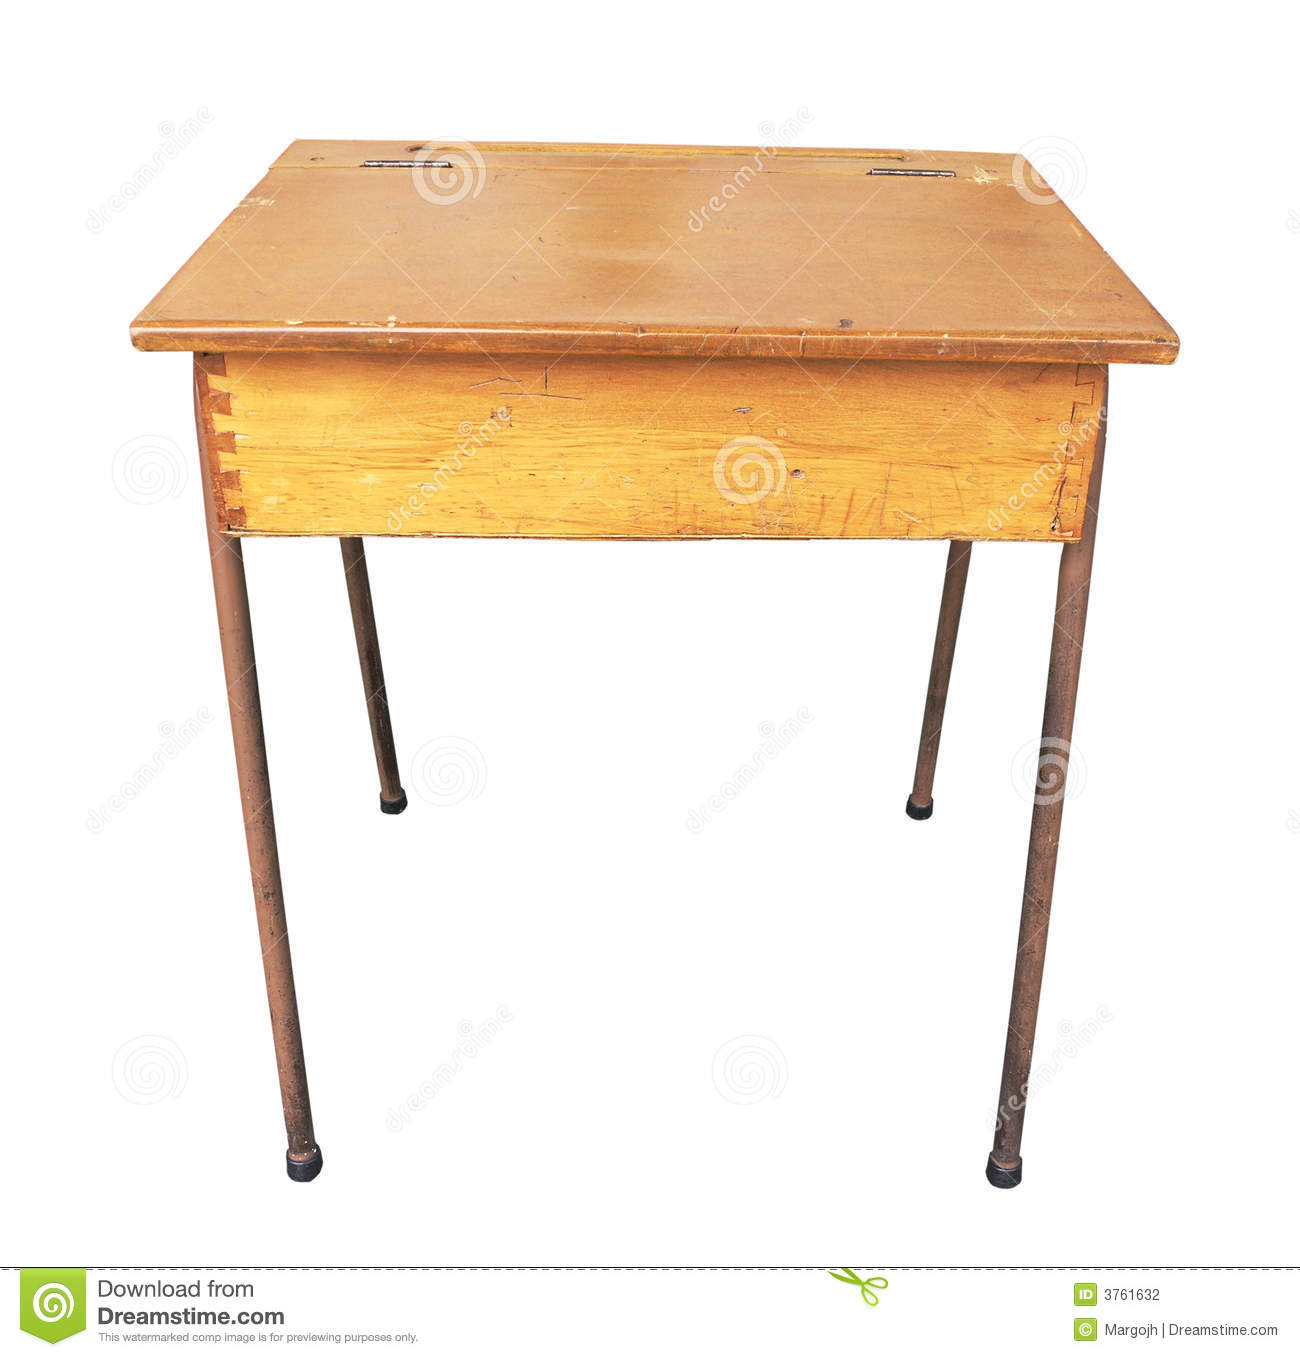 Antique Wooden School Desk Stock Photography Image 3761632